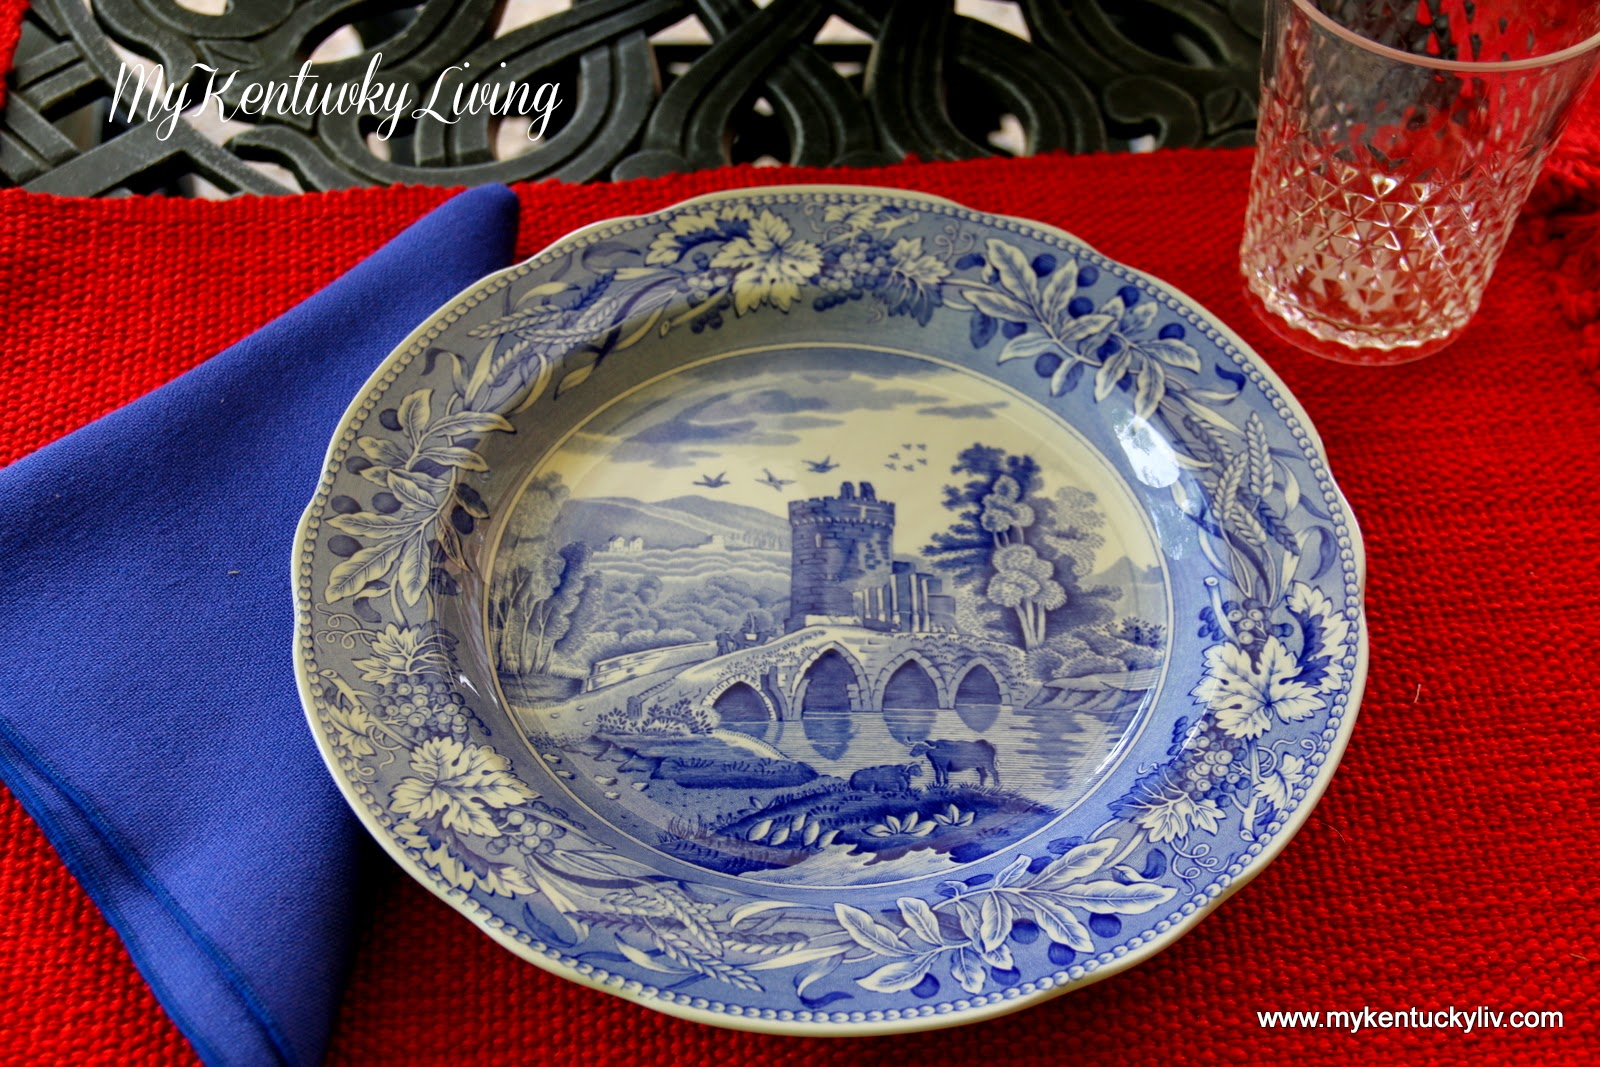 Normally for outside use I would use a melamine plate or a toss away plate but this time I thought I would go with a china plate. & A Red White and Blue Table Setting - My Kentucky Living